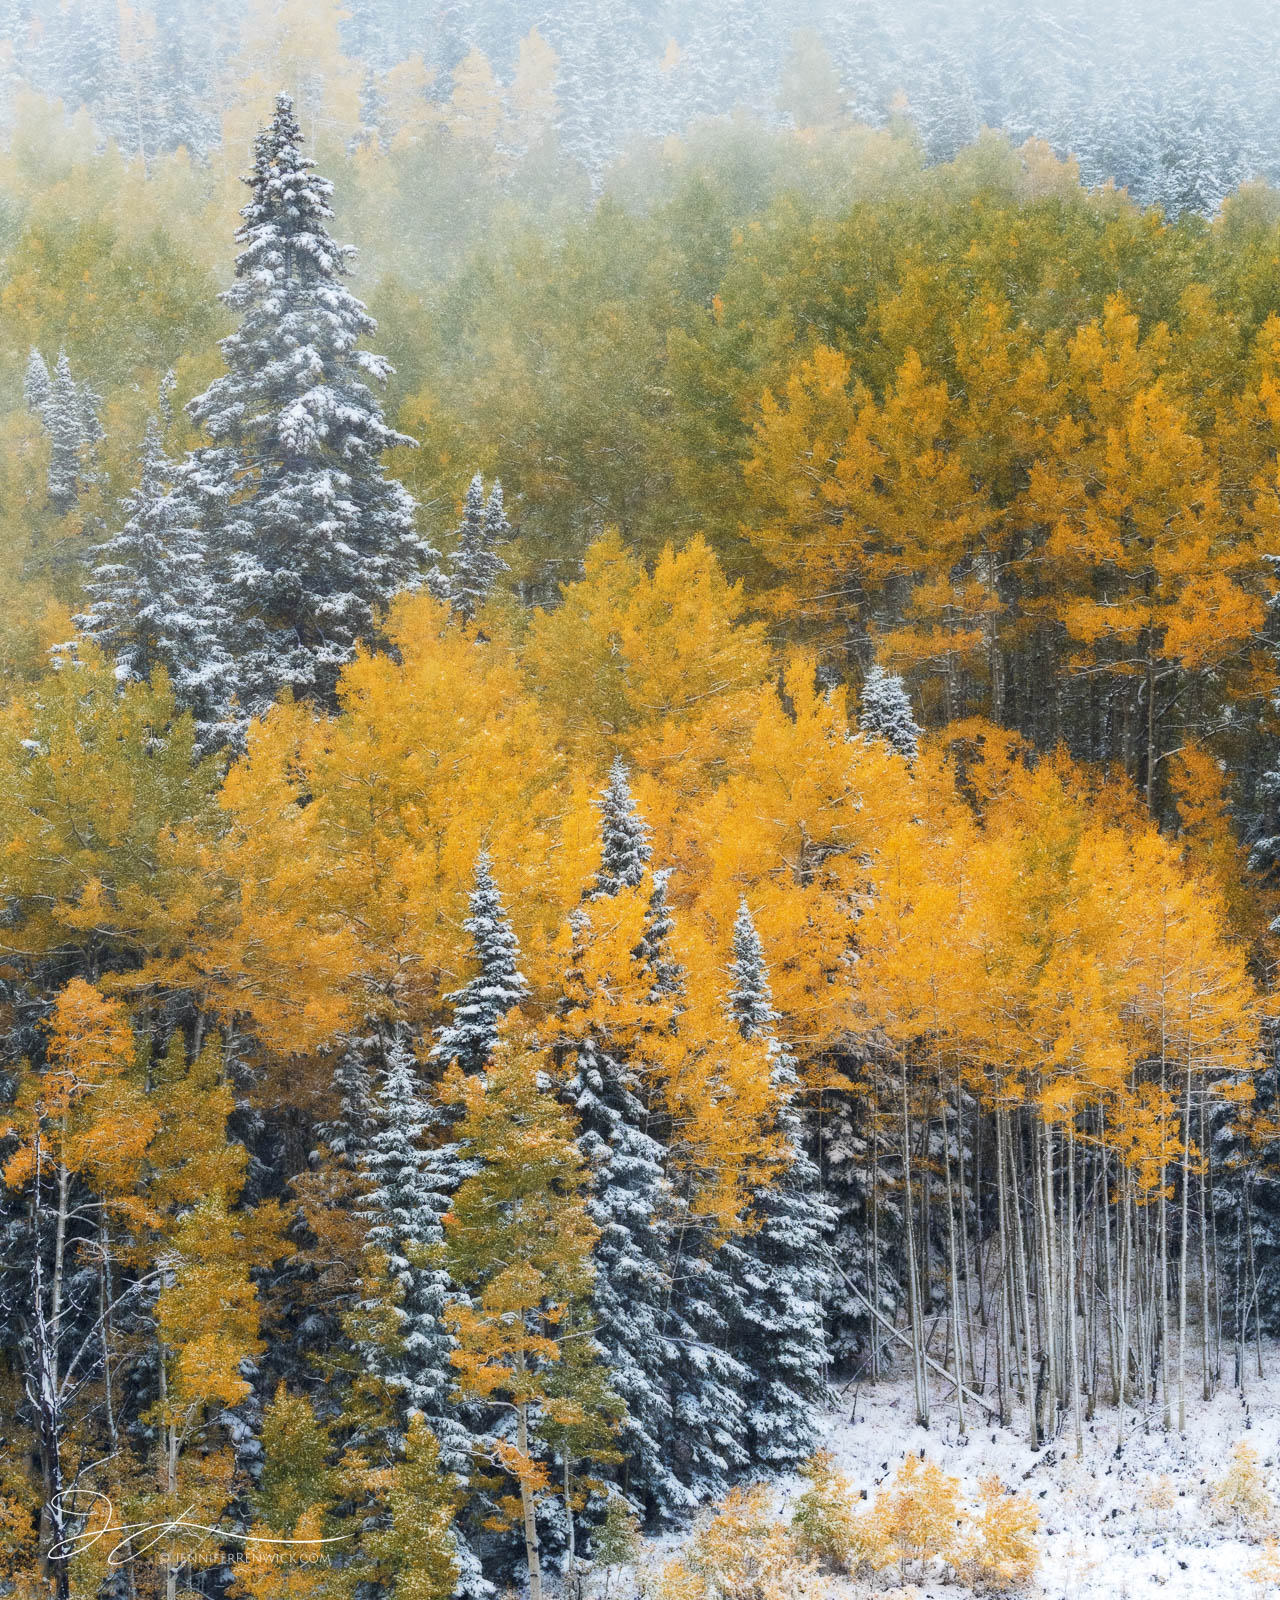 An early season snow falls on the changing aspen trees, creating a magical autumn scene.